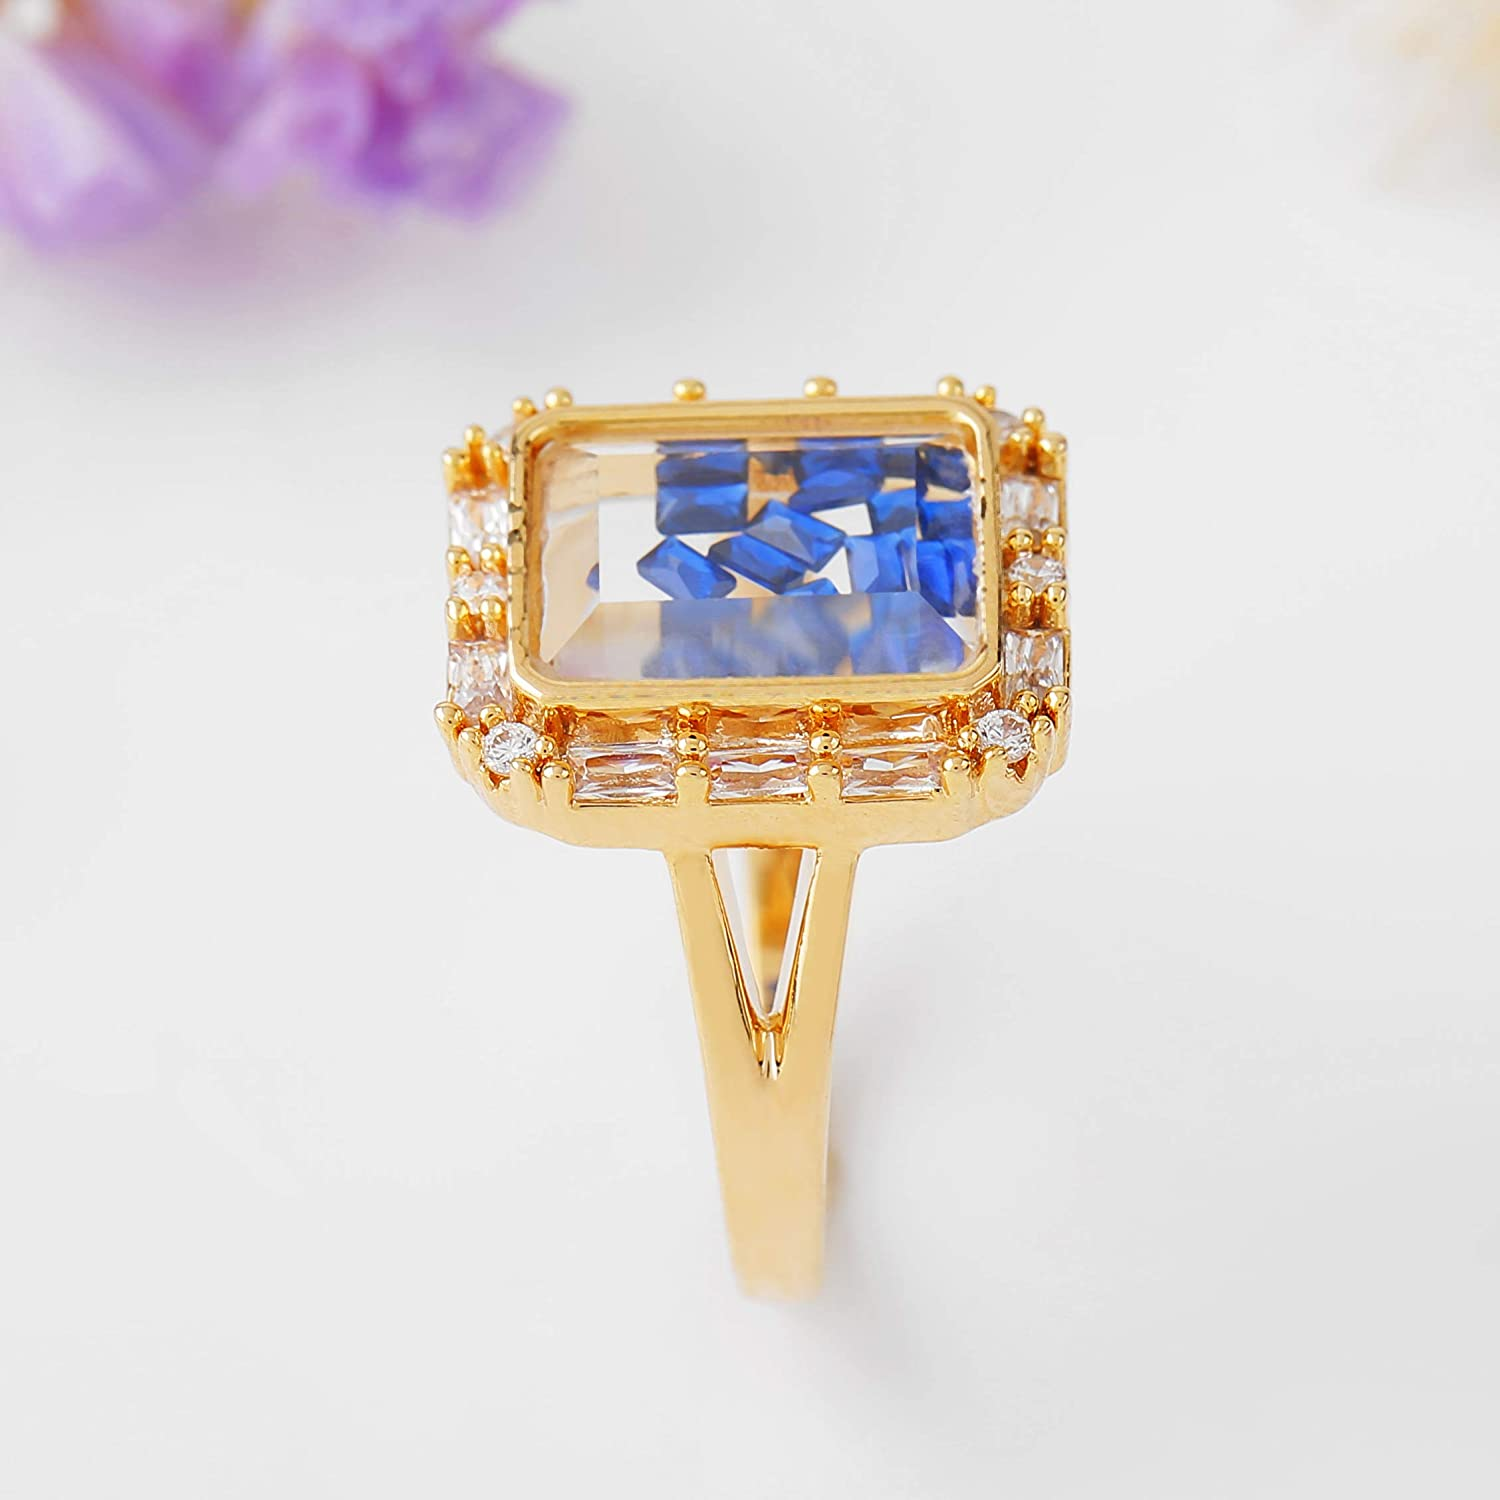 SENTERIA Rings for Women Gold Princess Cut Cubic Zirconia 14K White Gold Plated Brass Cocktail Ring for Teen Girls Mens Bling Ring Jewelry Gifts Packing